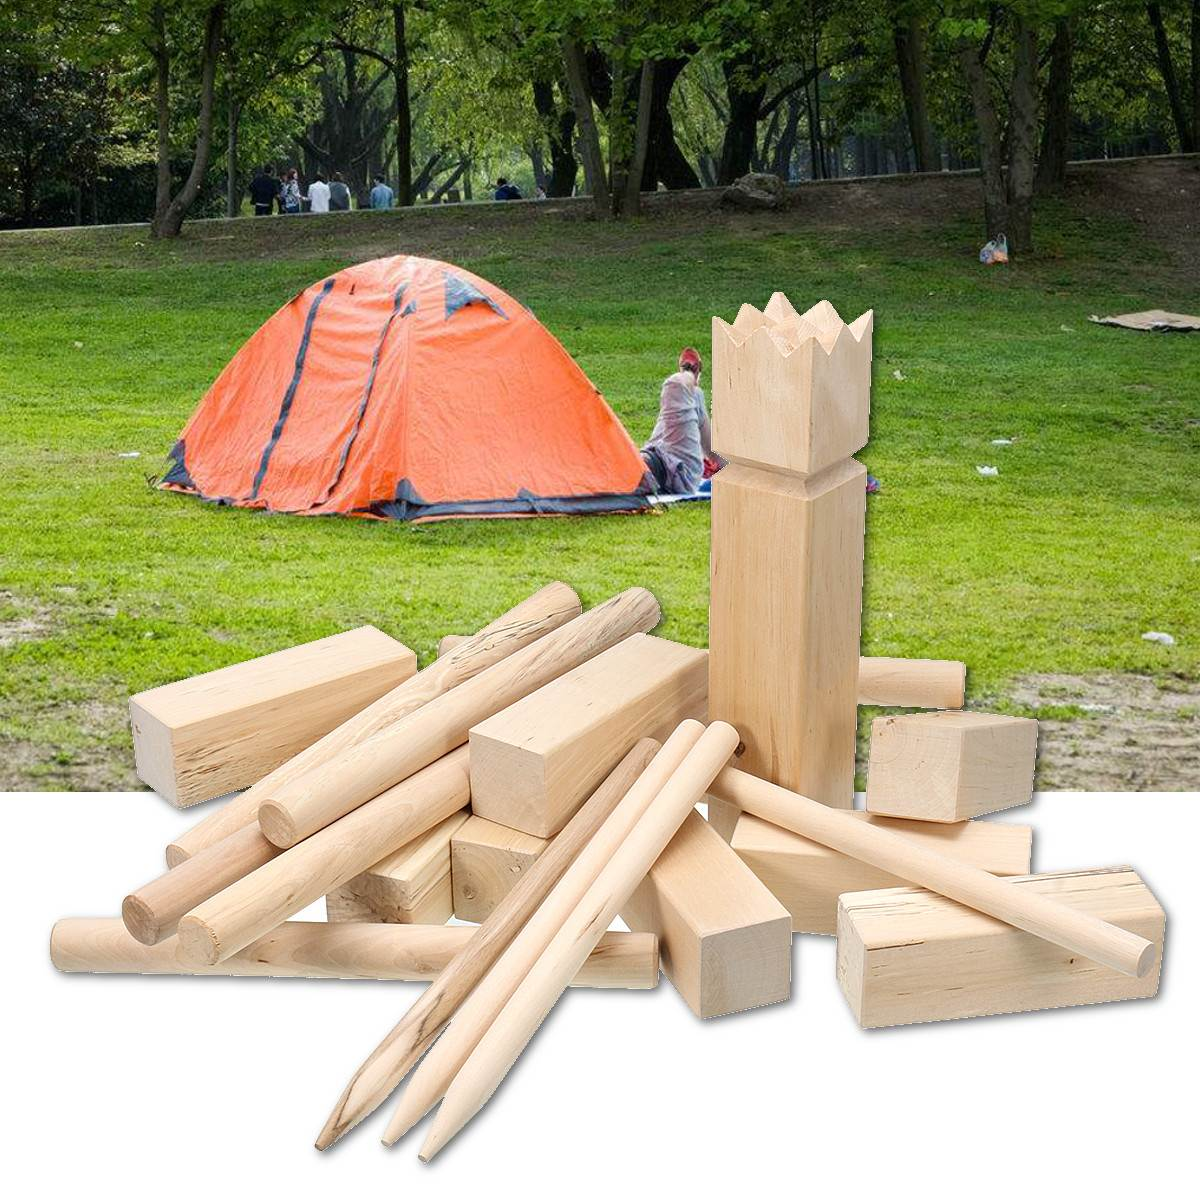 21PCS/Set Outdoor Fun Game Kubb Birch Wooden Family Garden Lawn Game Toy Party Camping Toy Sports Bowling Block Chess Boules21PCS/Set Outdoor Fun Game Kubb Birch Wooden Family Garden Lawn Game Toy Party Camping Toy Sports Bowling Block Chess Boules